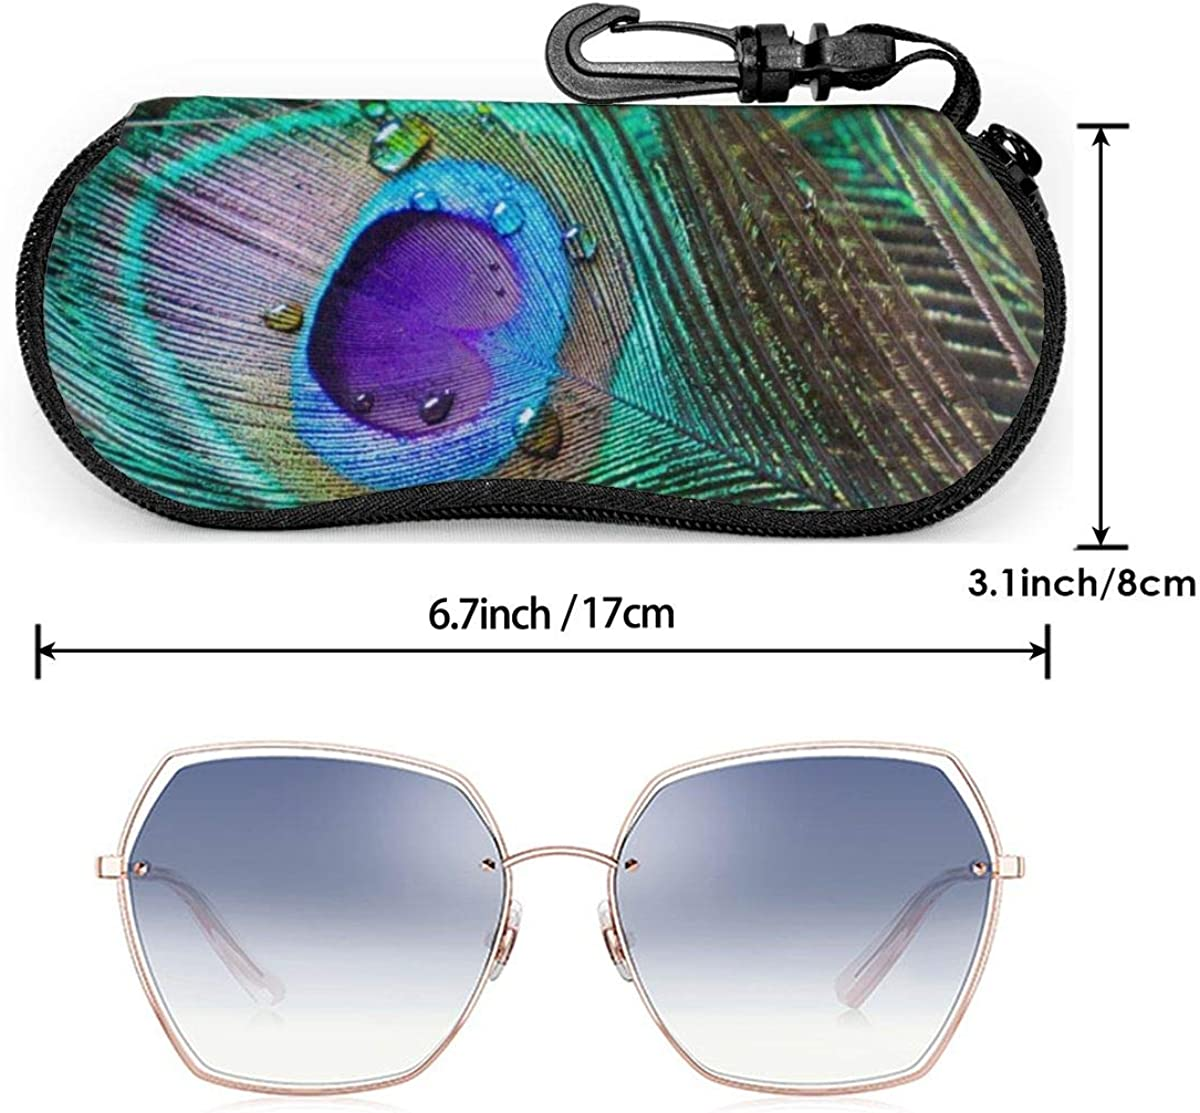 Peacock Feather Abstract Sunglasses Soft Case Ultra Light Neoprene Zipper Eyeglass Case With Key Chain